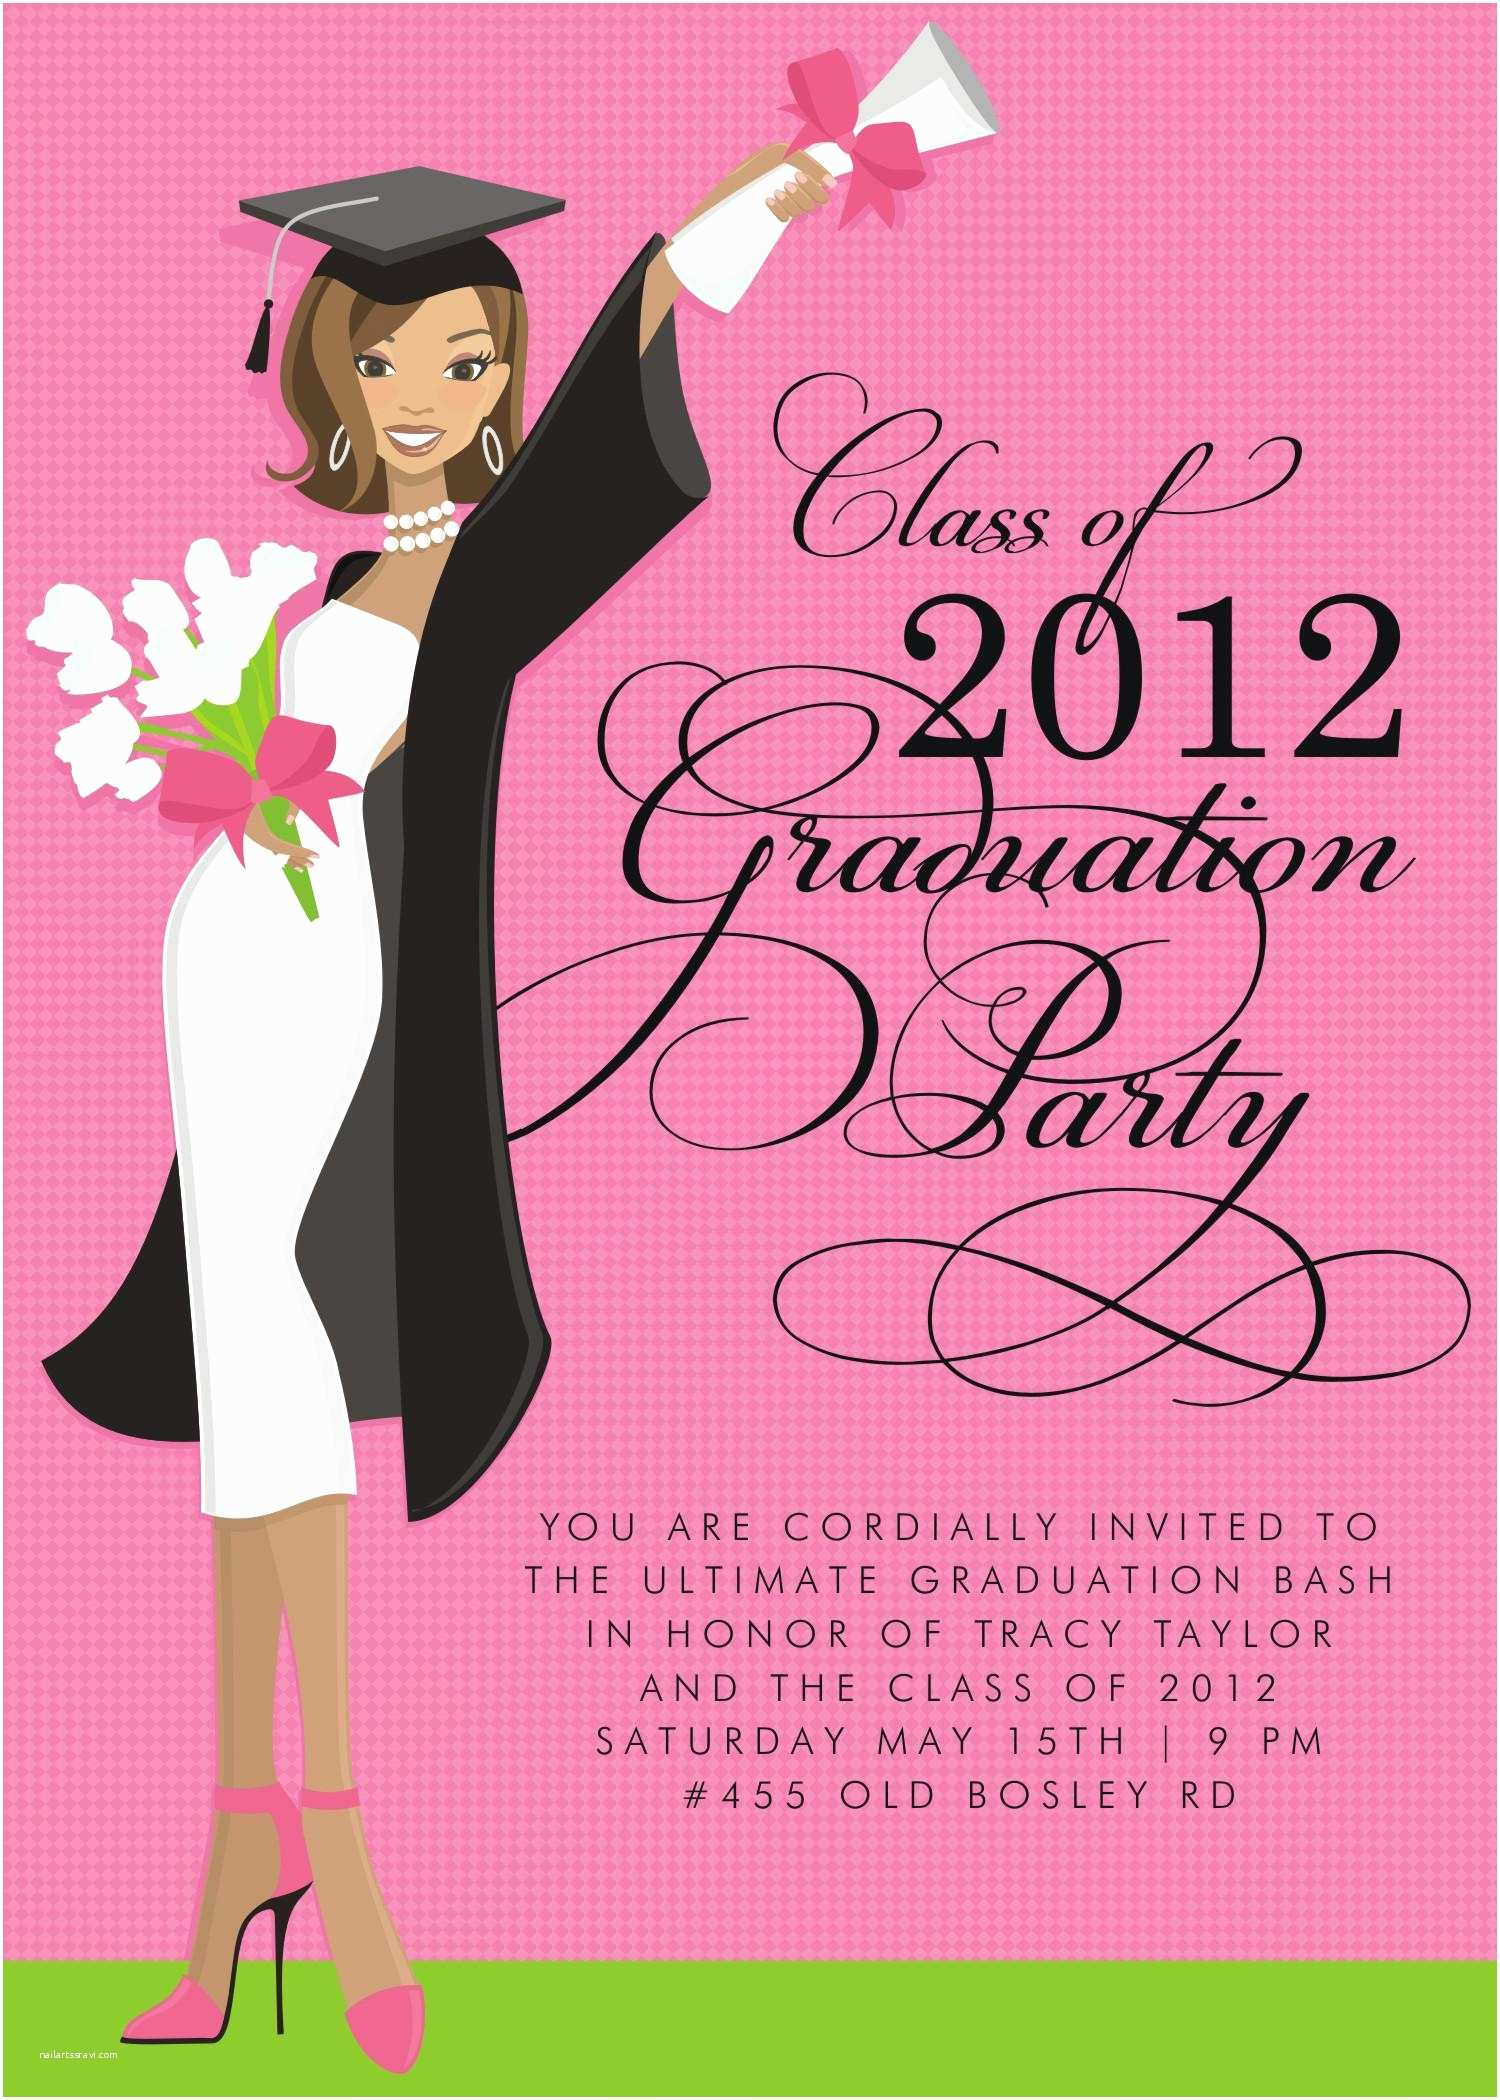 Graduation Party Invitation Templates Graduation Invitations Graduation Invitations Wording